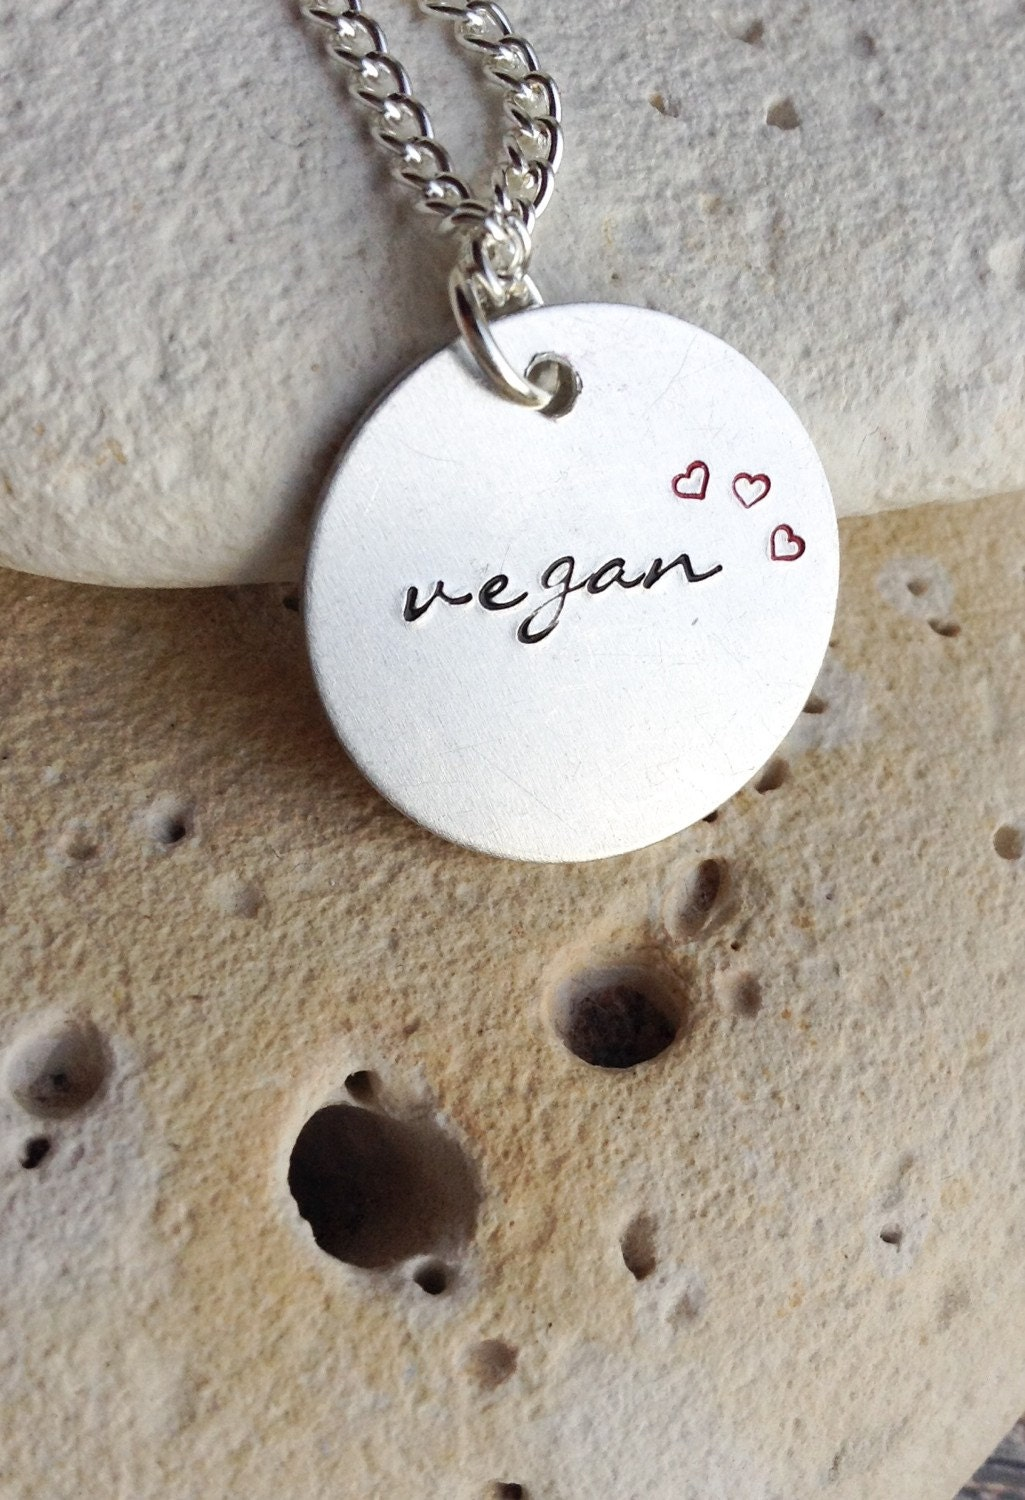 Vegan necklace - vegan jewelry - Handstamped vegan animal rights necklace with tiny red hearts on 18